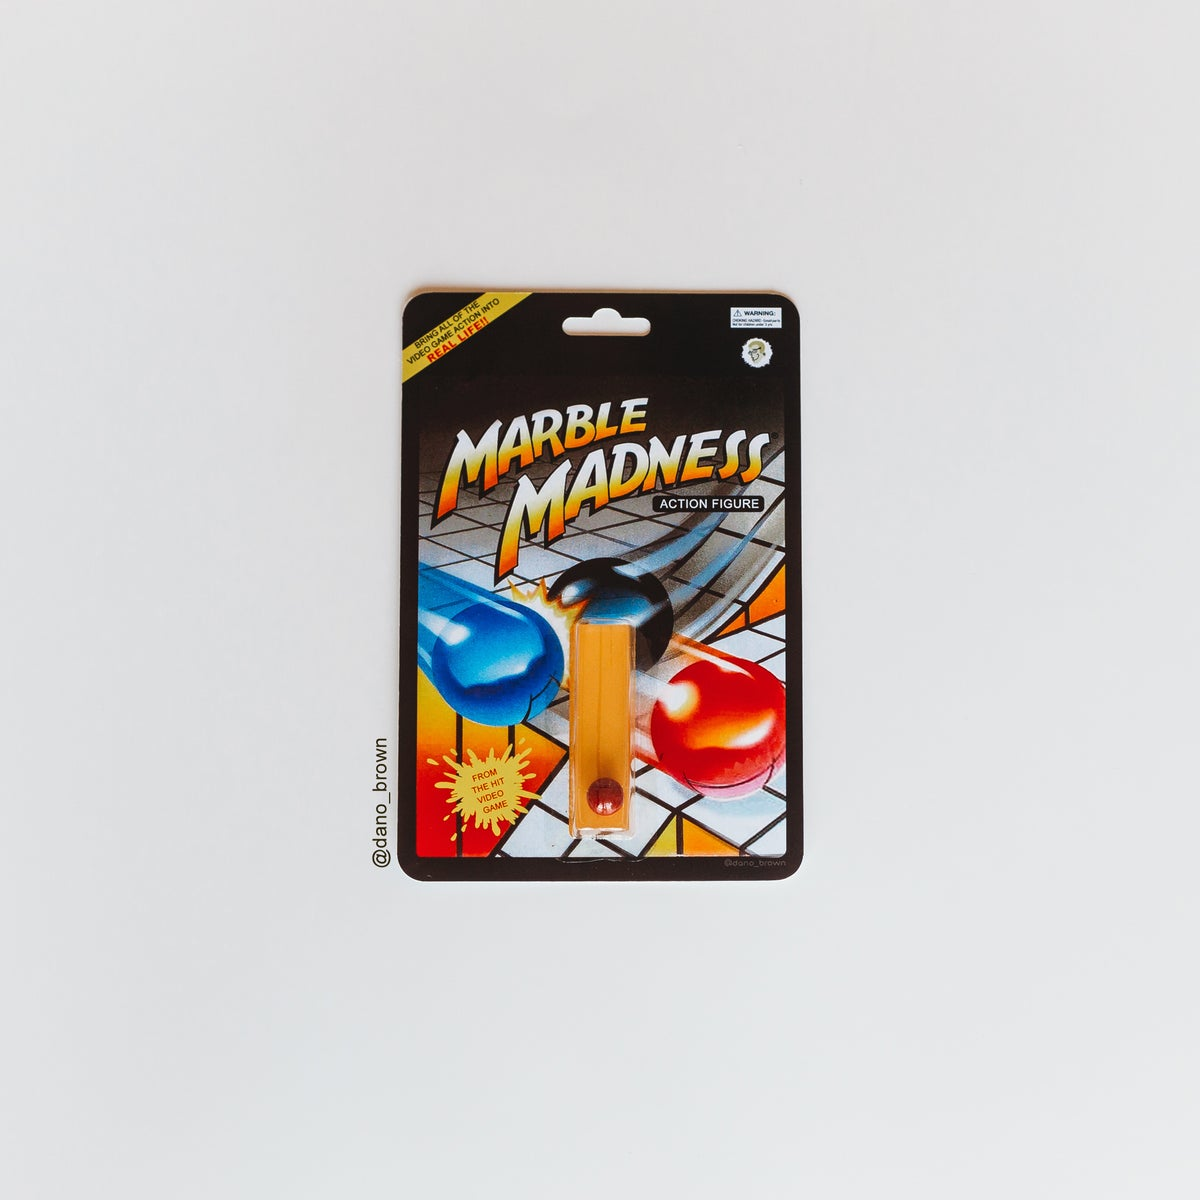 Image of Marble Madness Action Figure (extremely realistic version)